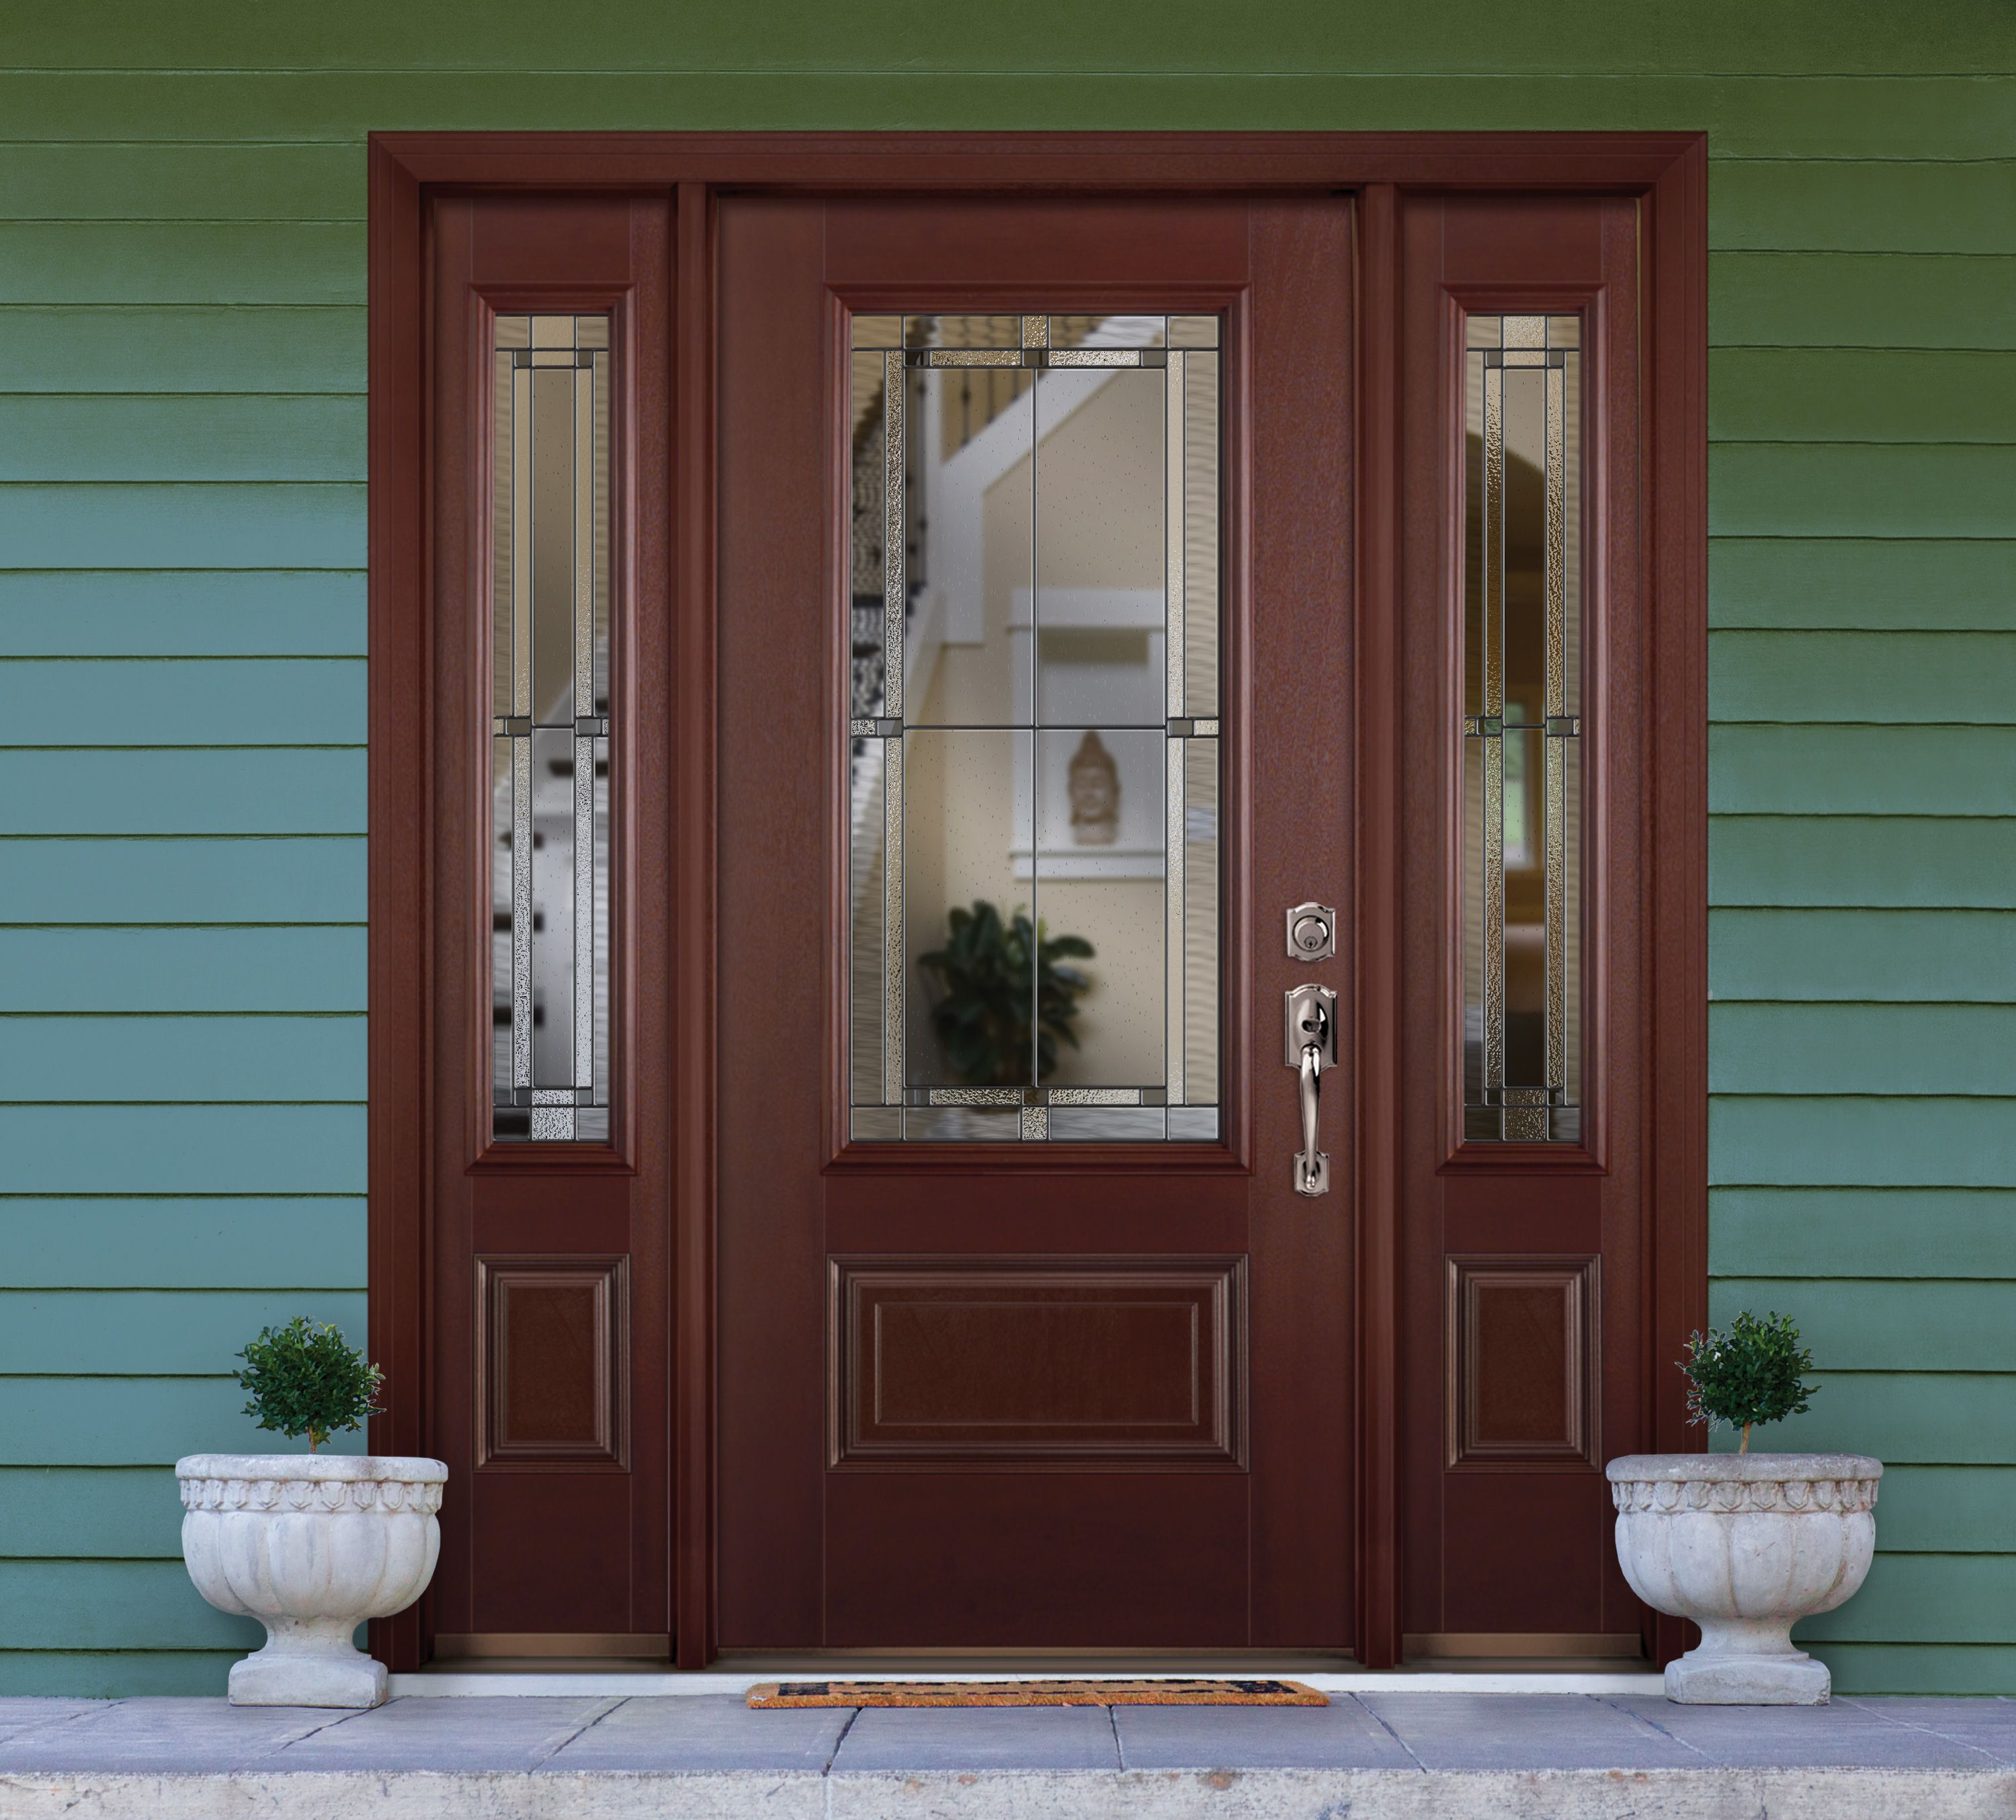 Traditional Styled Home Entryway Featuring Masonite Belleville Series Mahogany Textured Exterior Door With Marco Style Decorative Glass Half Lite